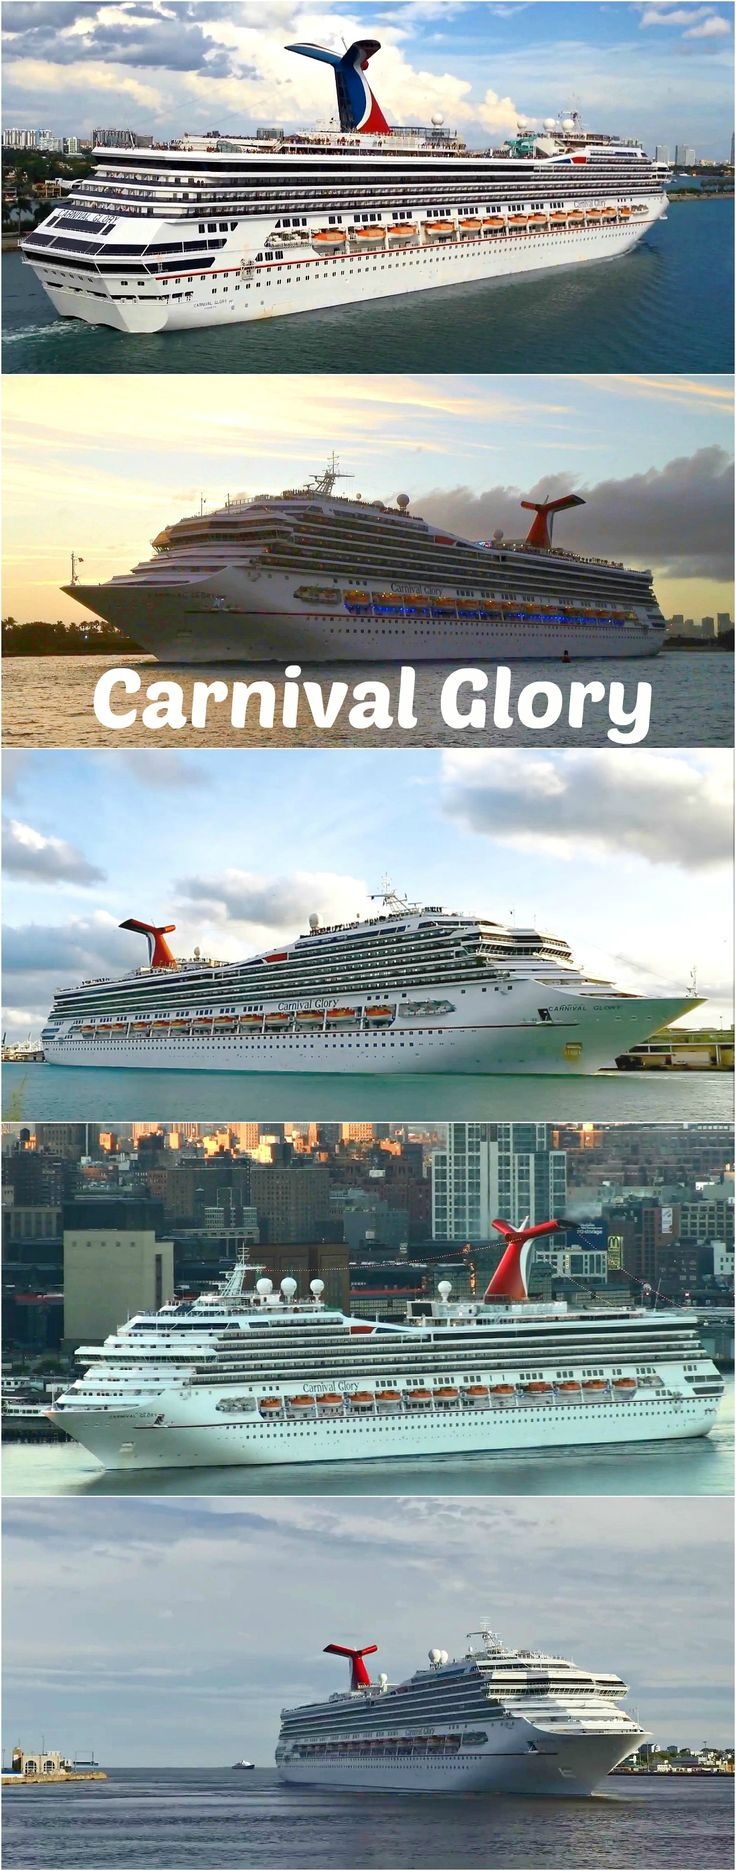 Carnival Glory, the queen of the Caribbean